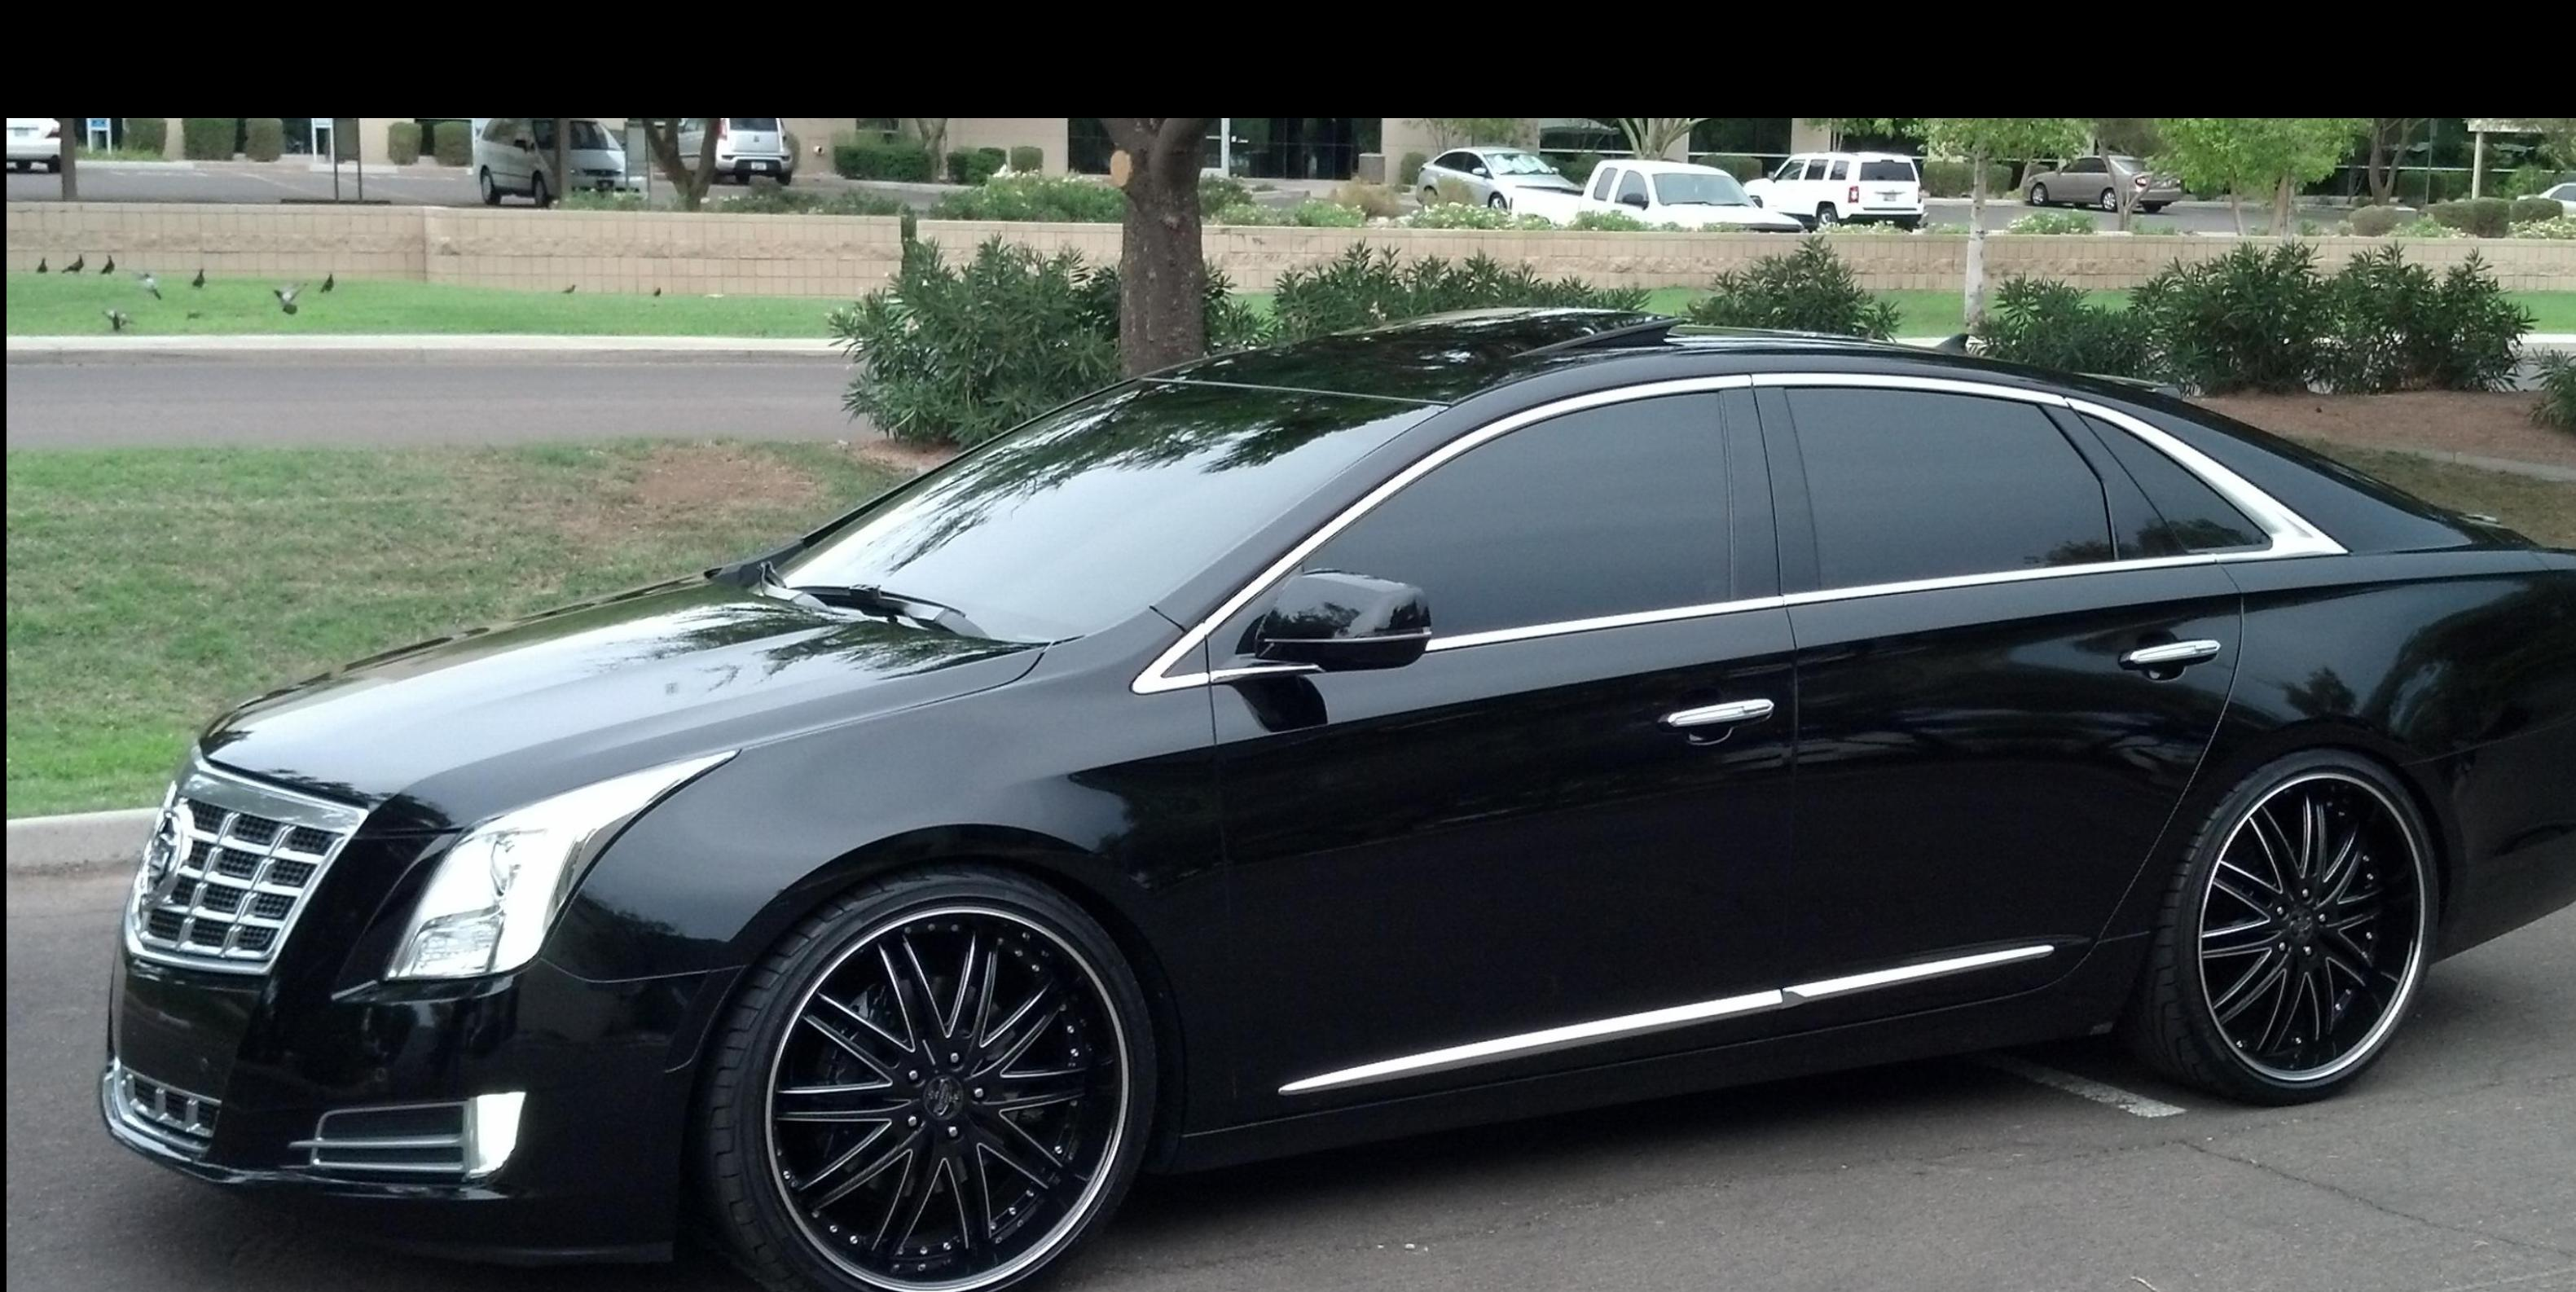 twopumped's 2014 Cadillac XTS